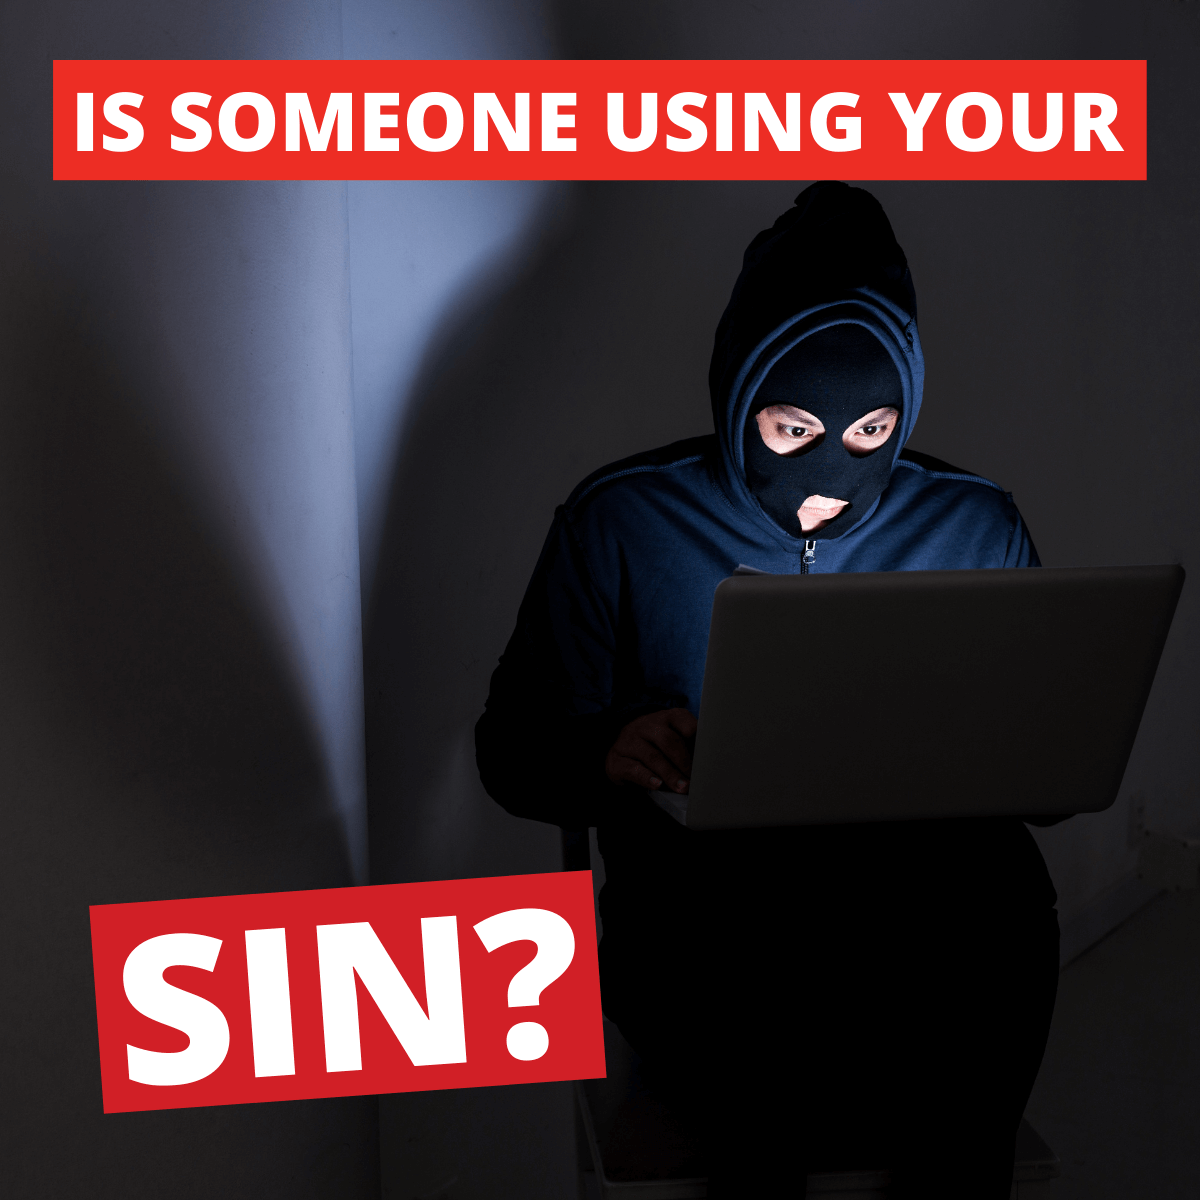 Lookout How Do I Know If Someone Is Using My SIN?